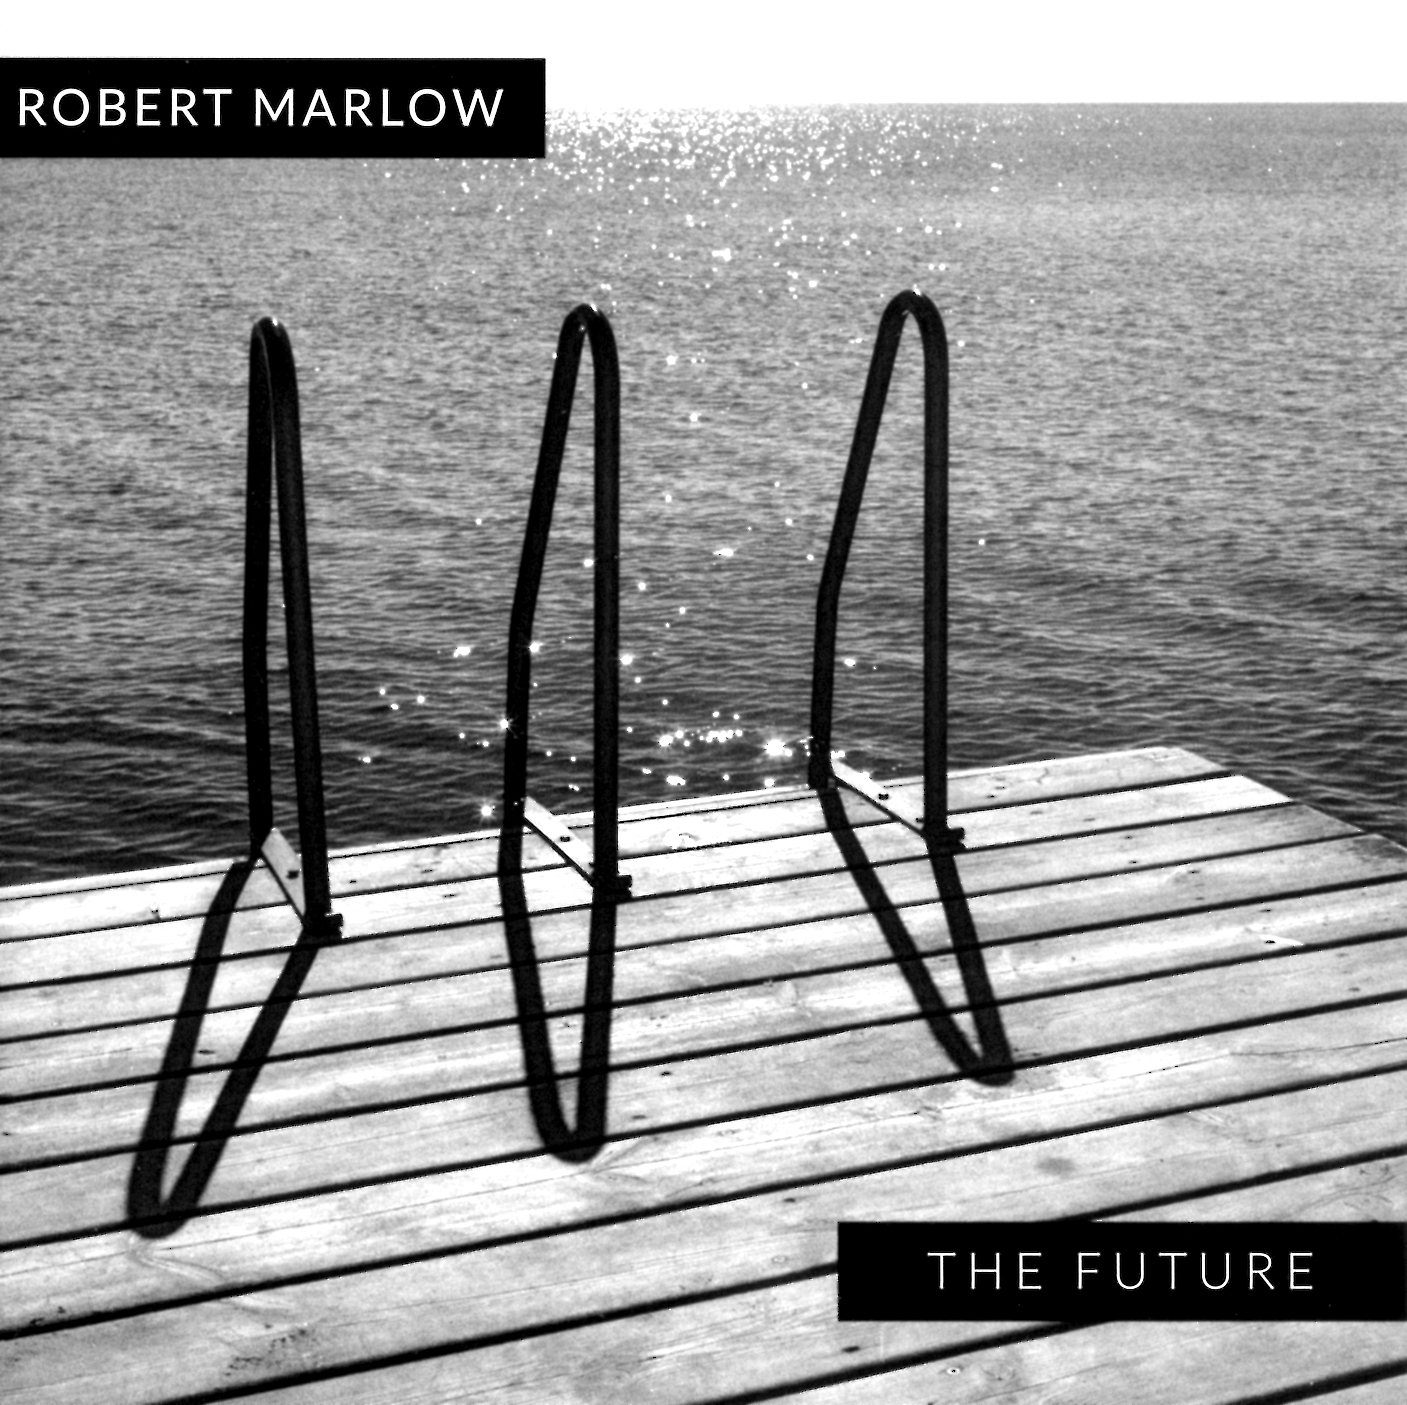 The Future_Robert Marlow